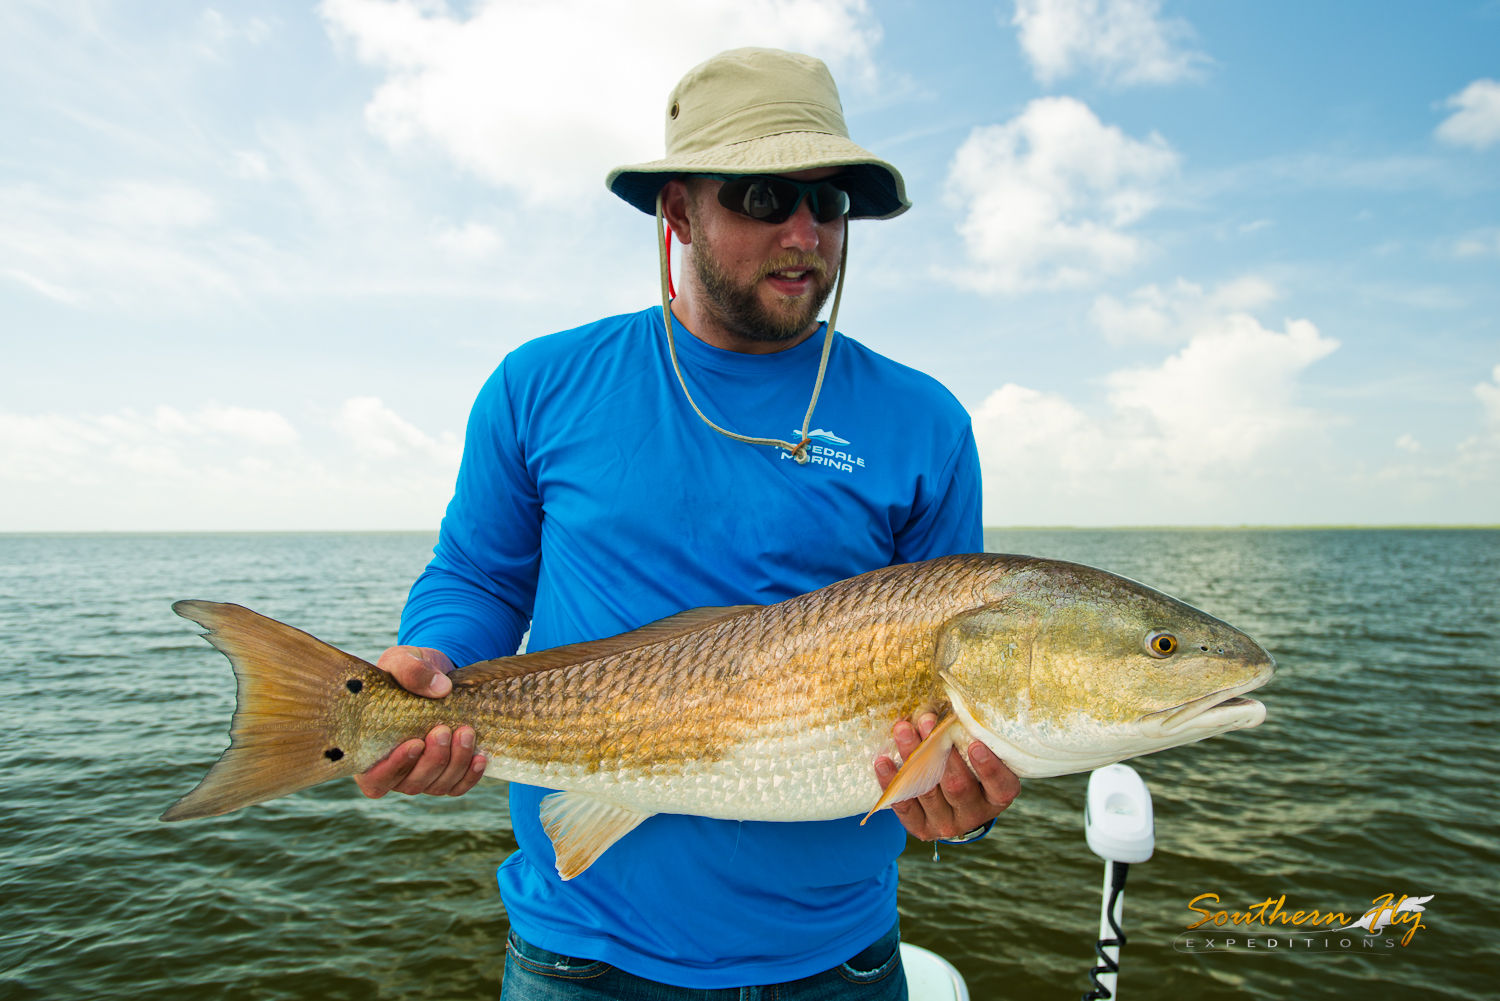 Southern Fly Expeditions fly fishing and light tackle guide with southern fly expeditions